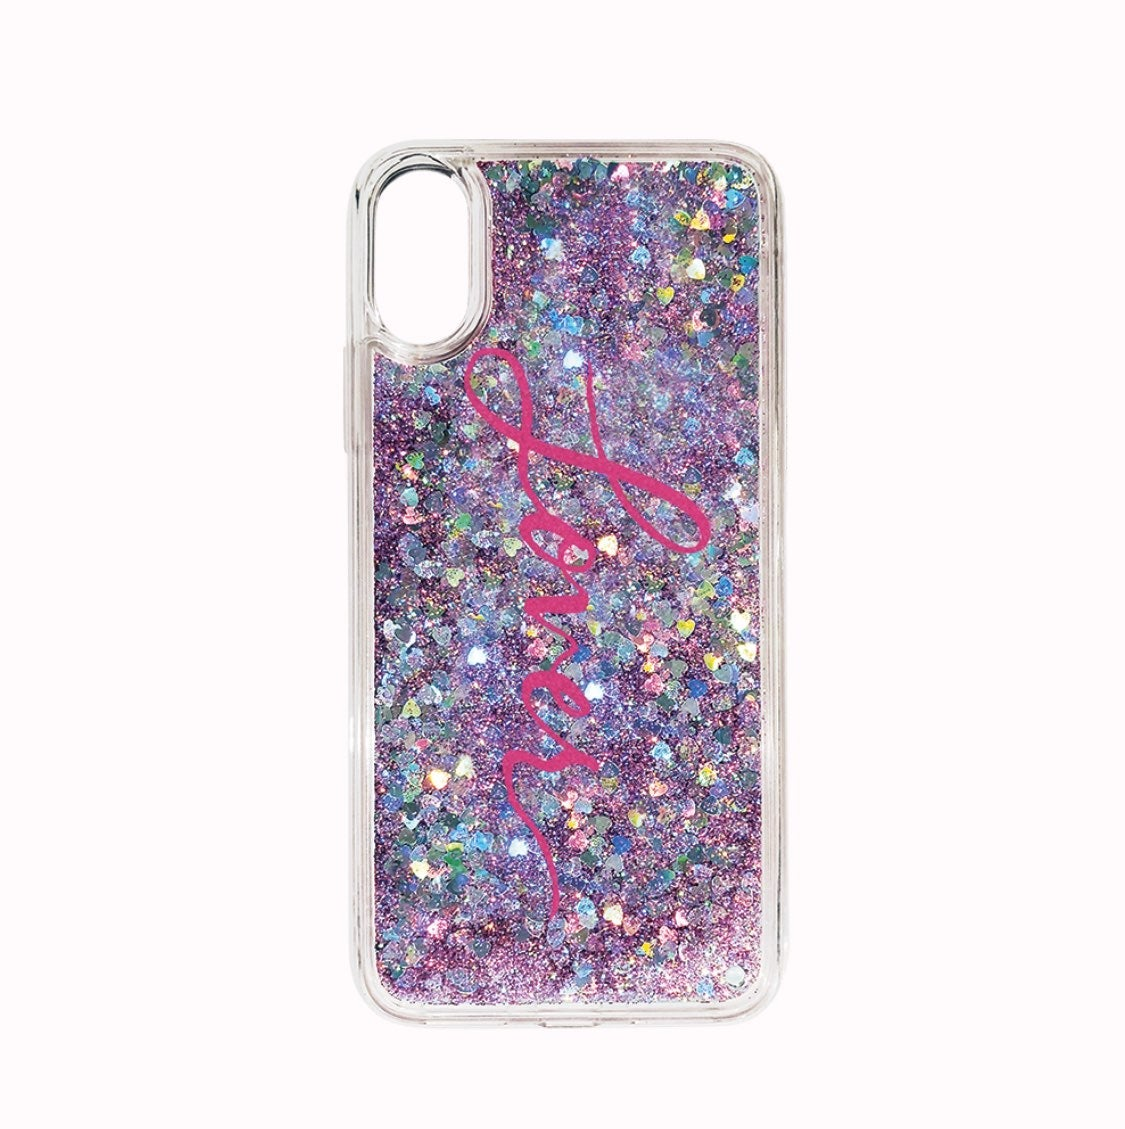 Taylor Swift Lover : iPhone 11 Pro Case